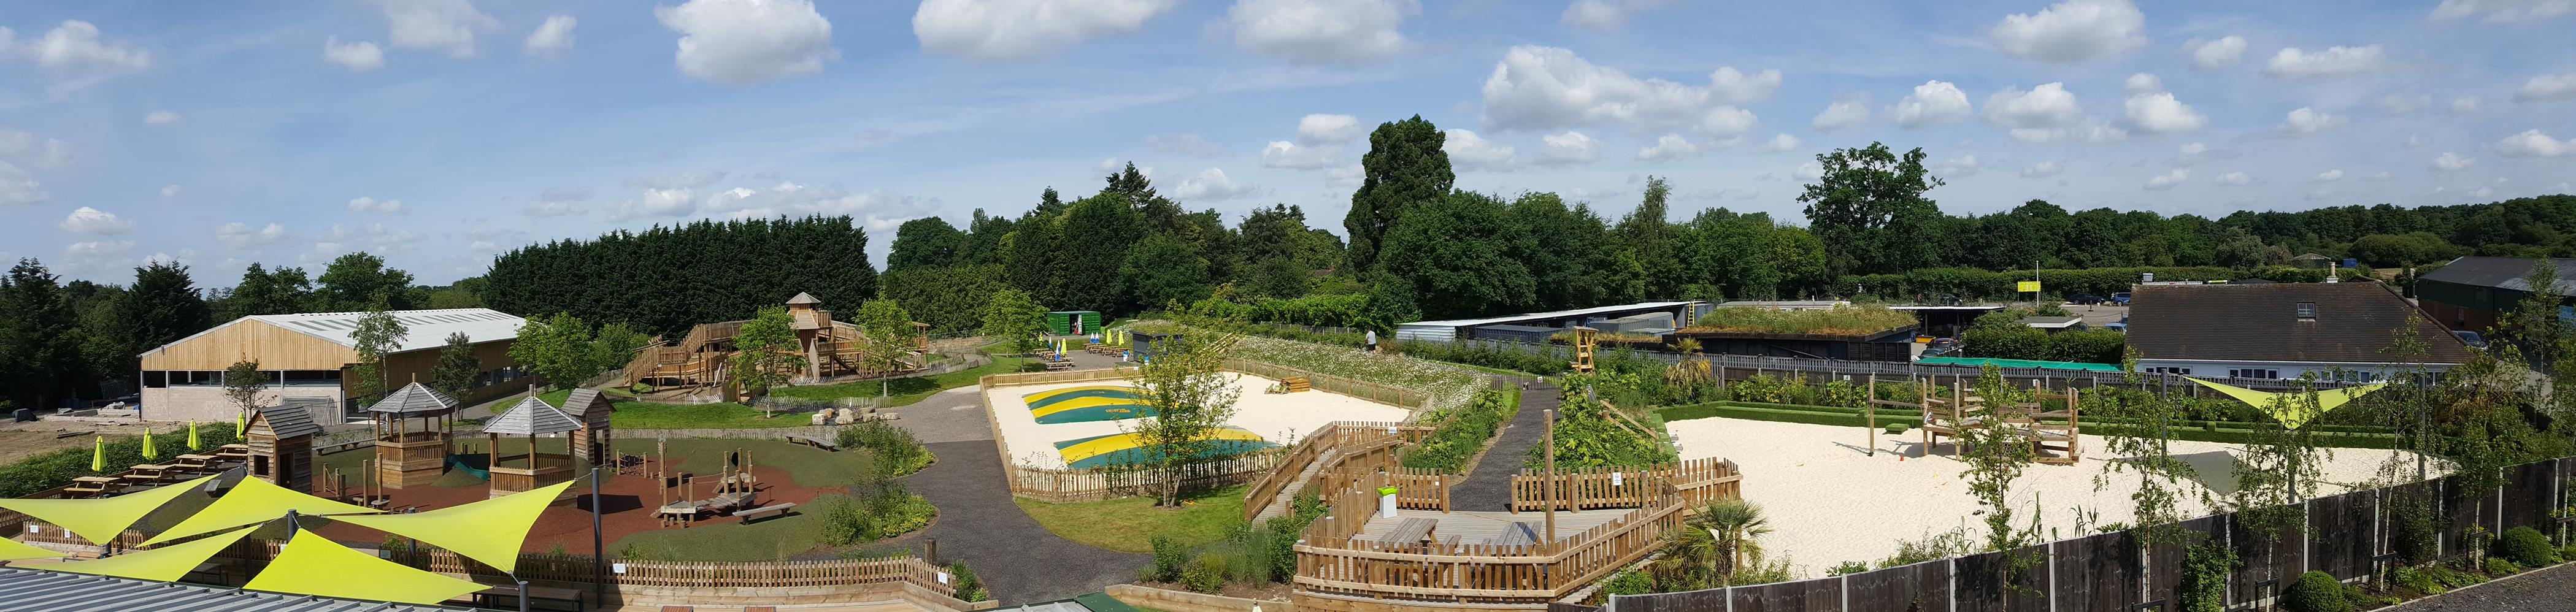 Chobham Adventure Farm